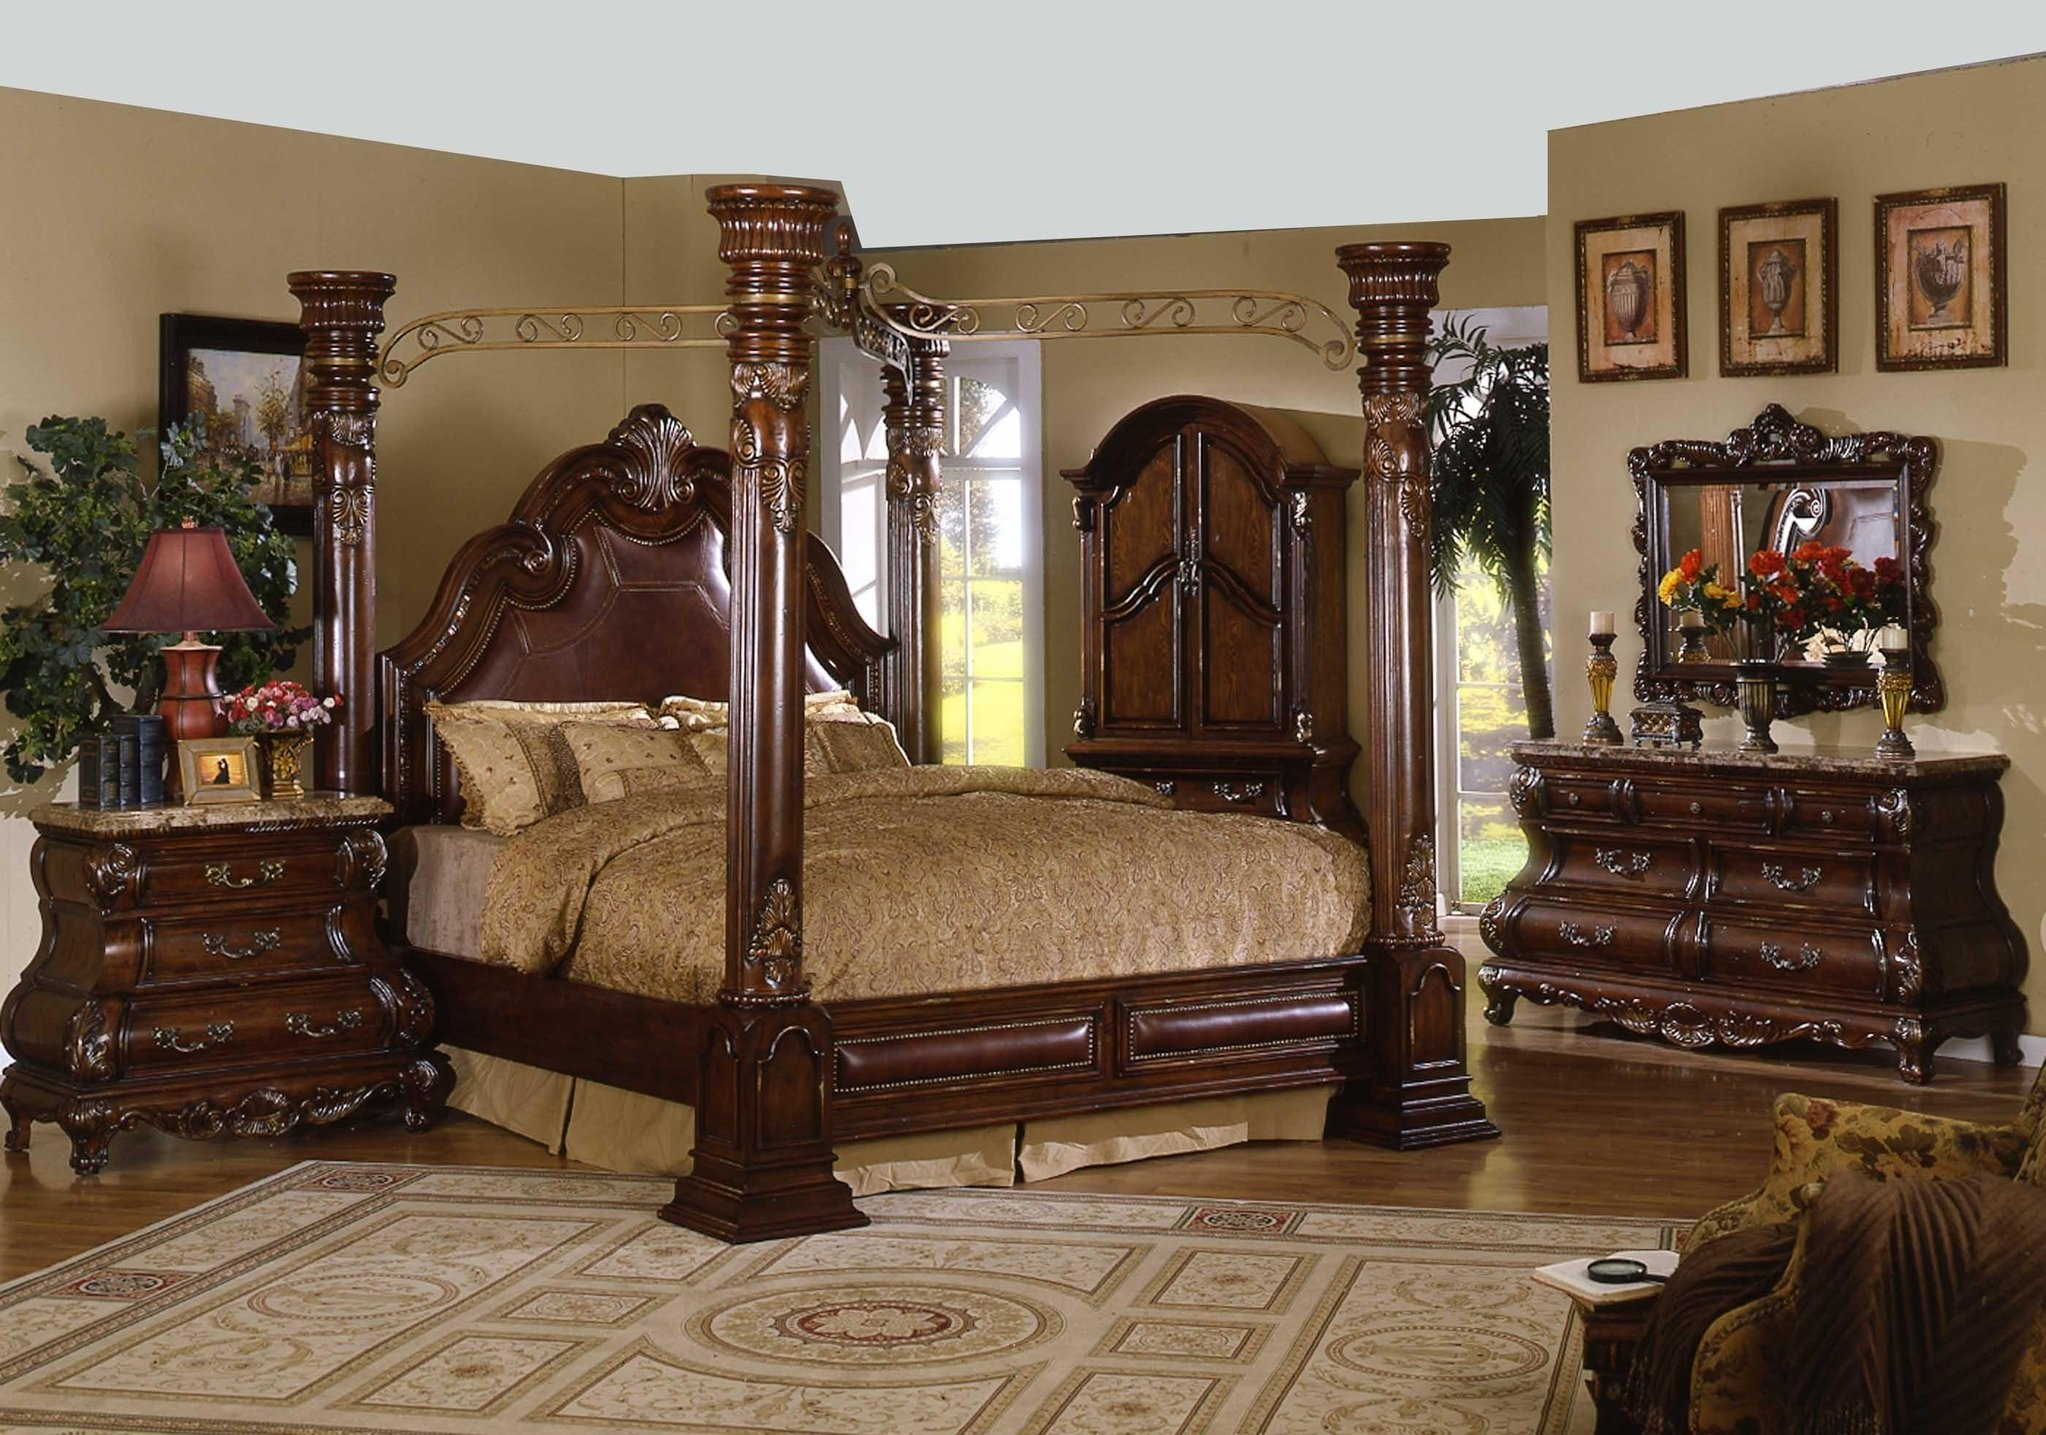 Permalink to King Four Poster Bed Frame